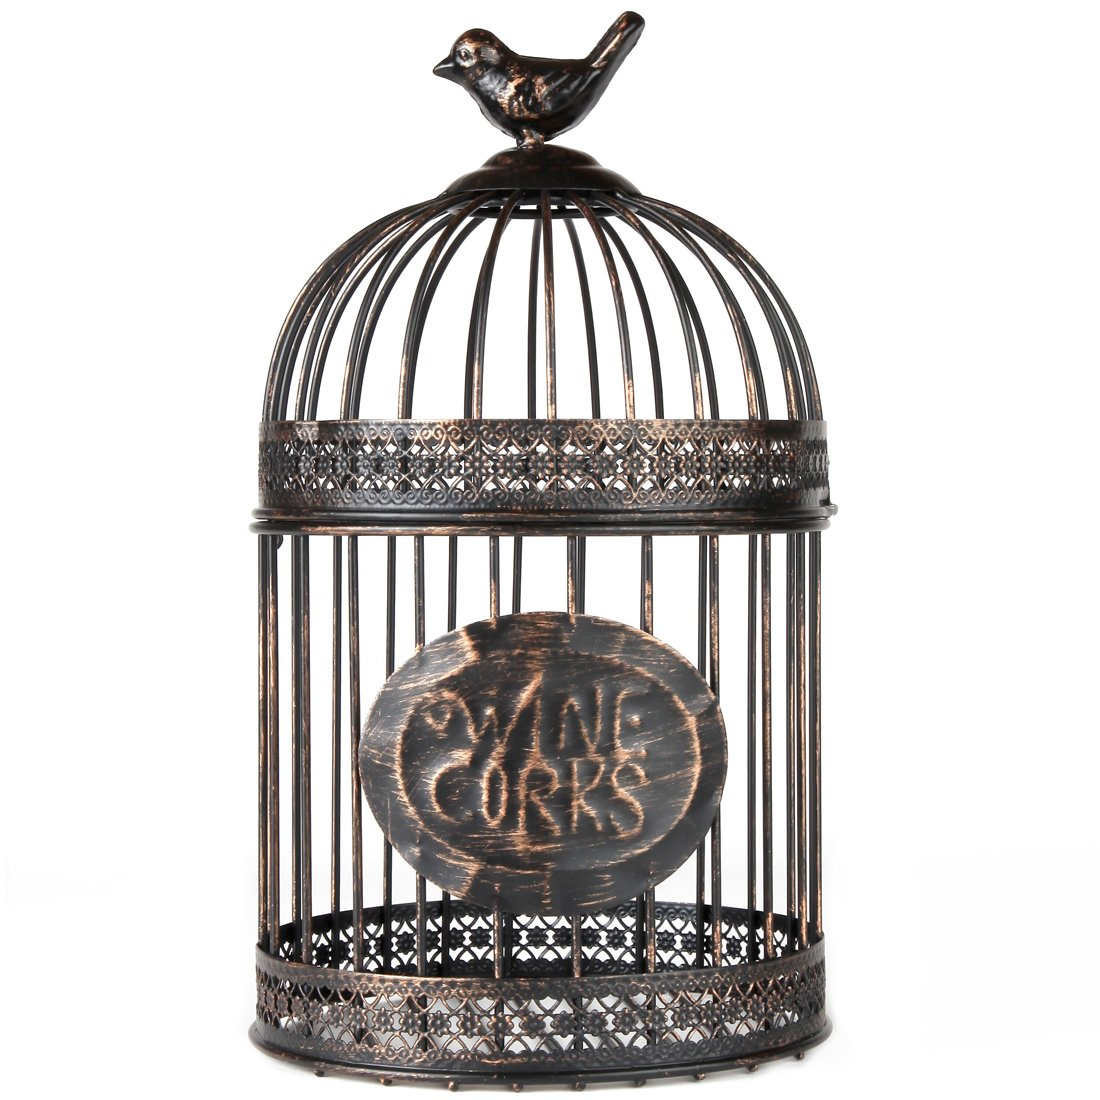 Home-X Keepsake Wine Cork Holder. Rustic Metal Birdcage 12''